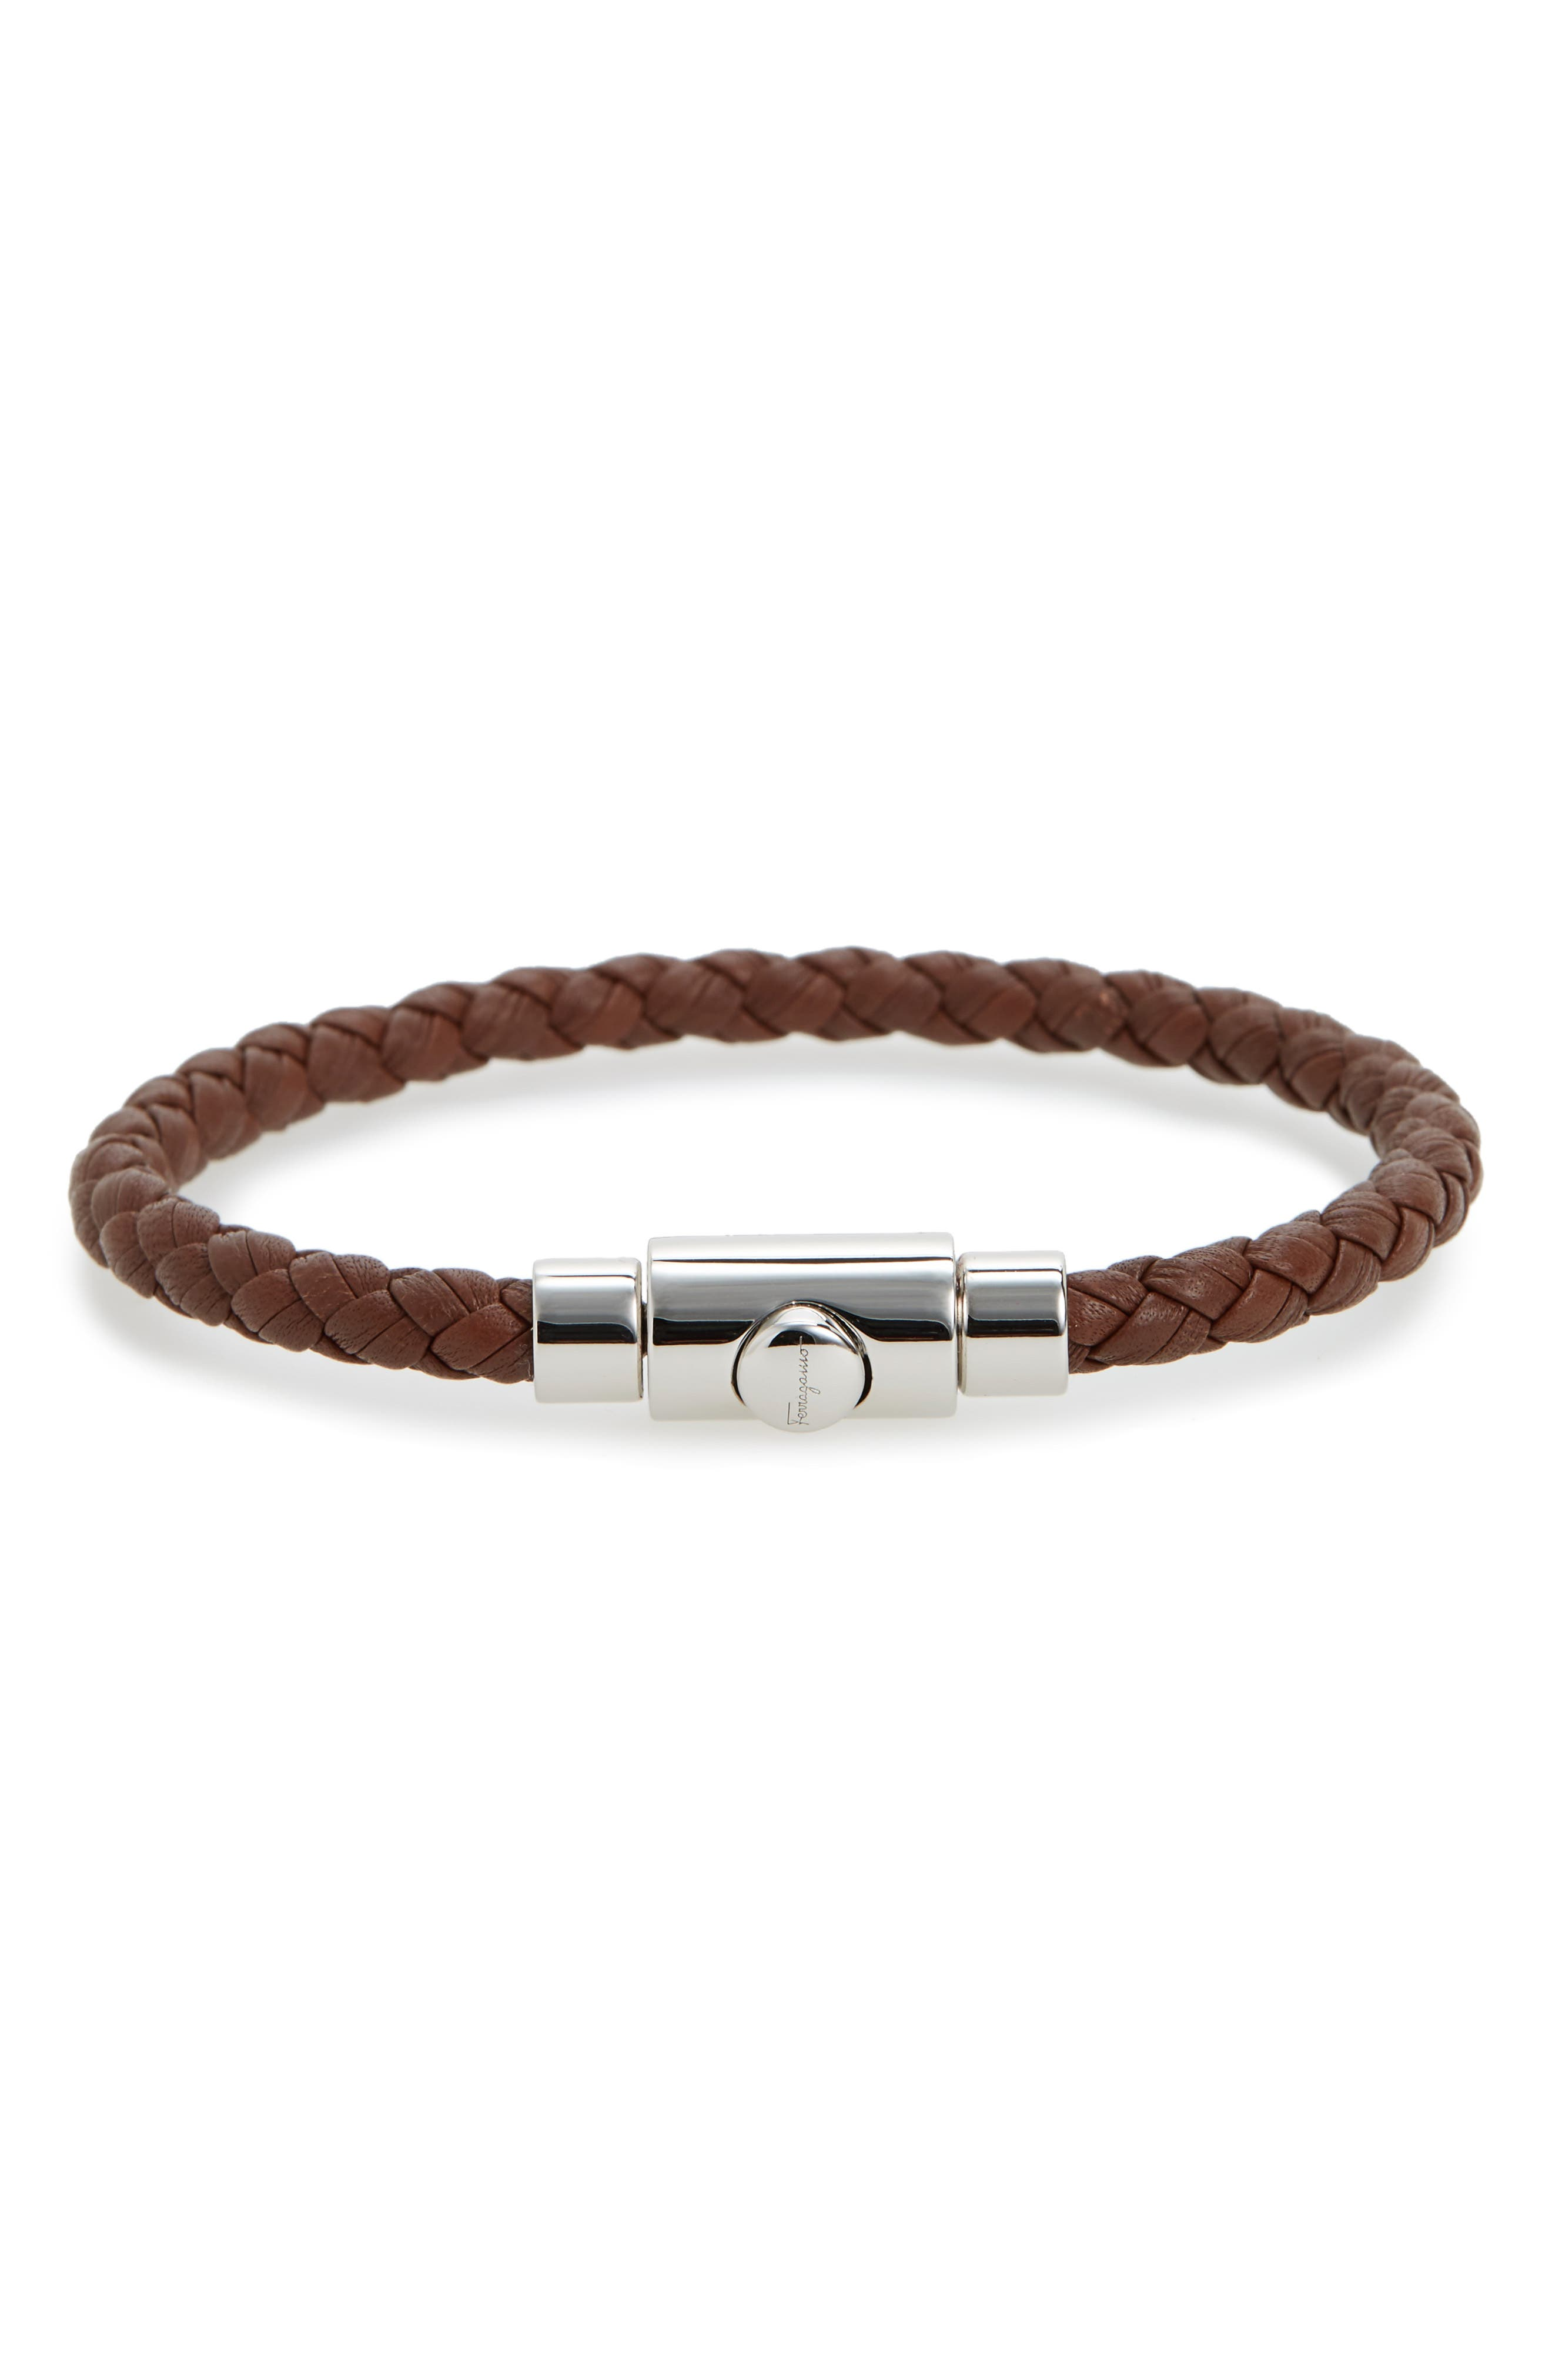 Braided Leather Bracelet,                             Main thumbnail 1, color,                             BARK BROWN